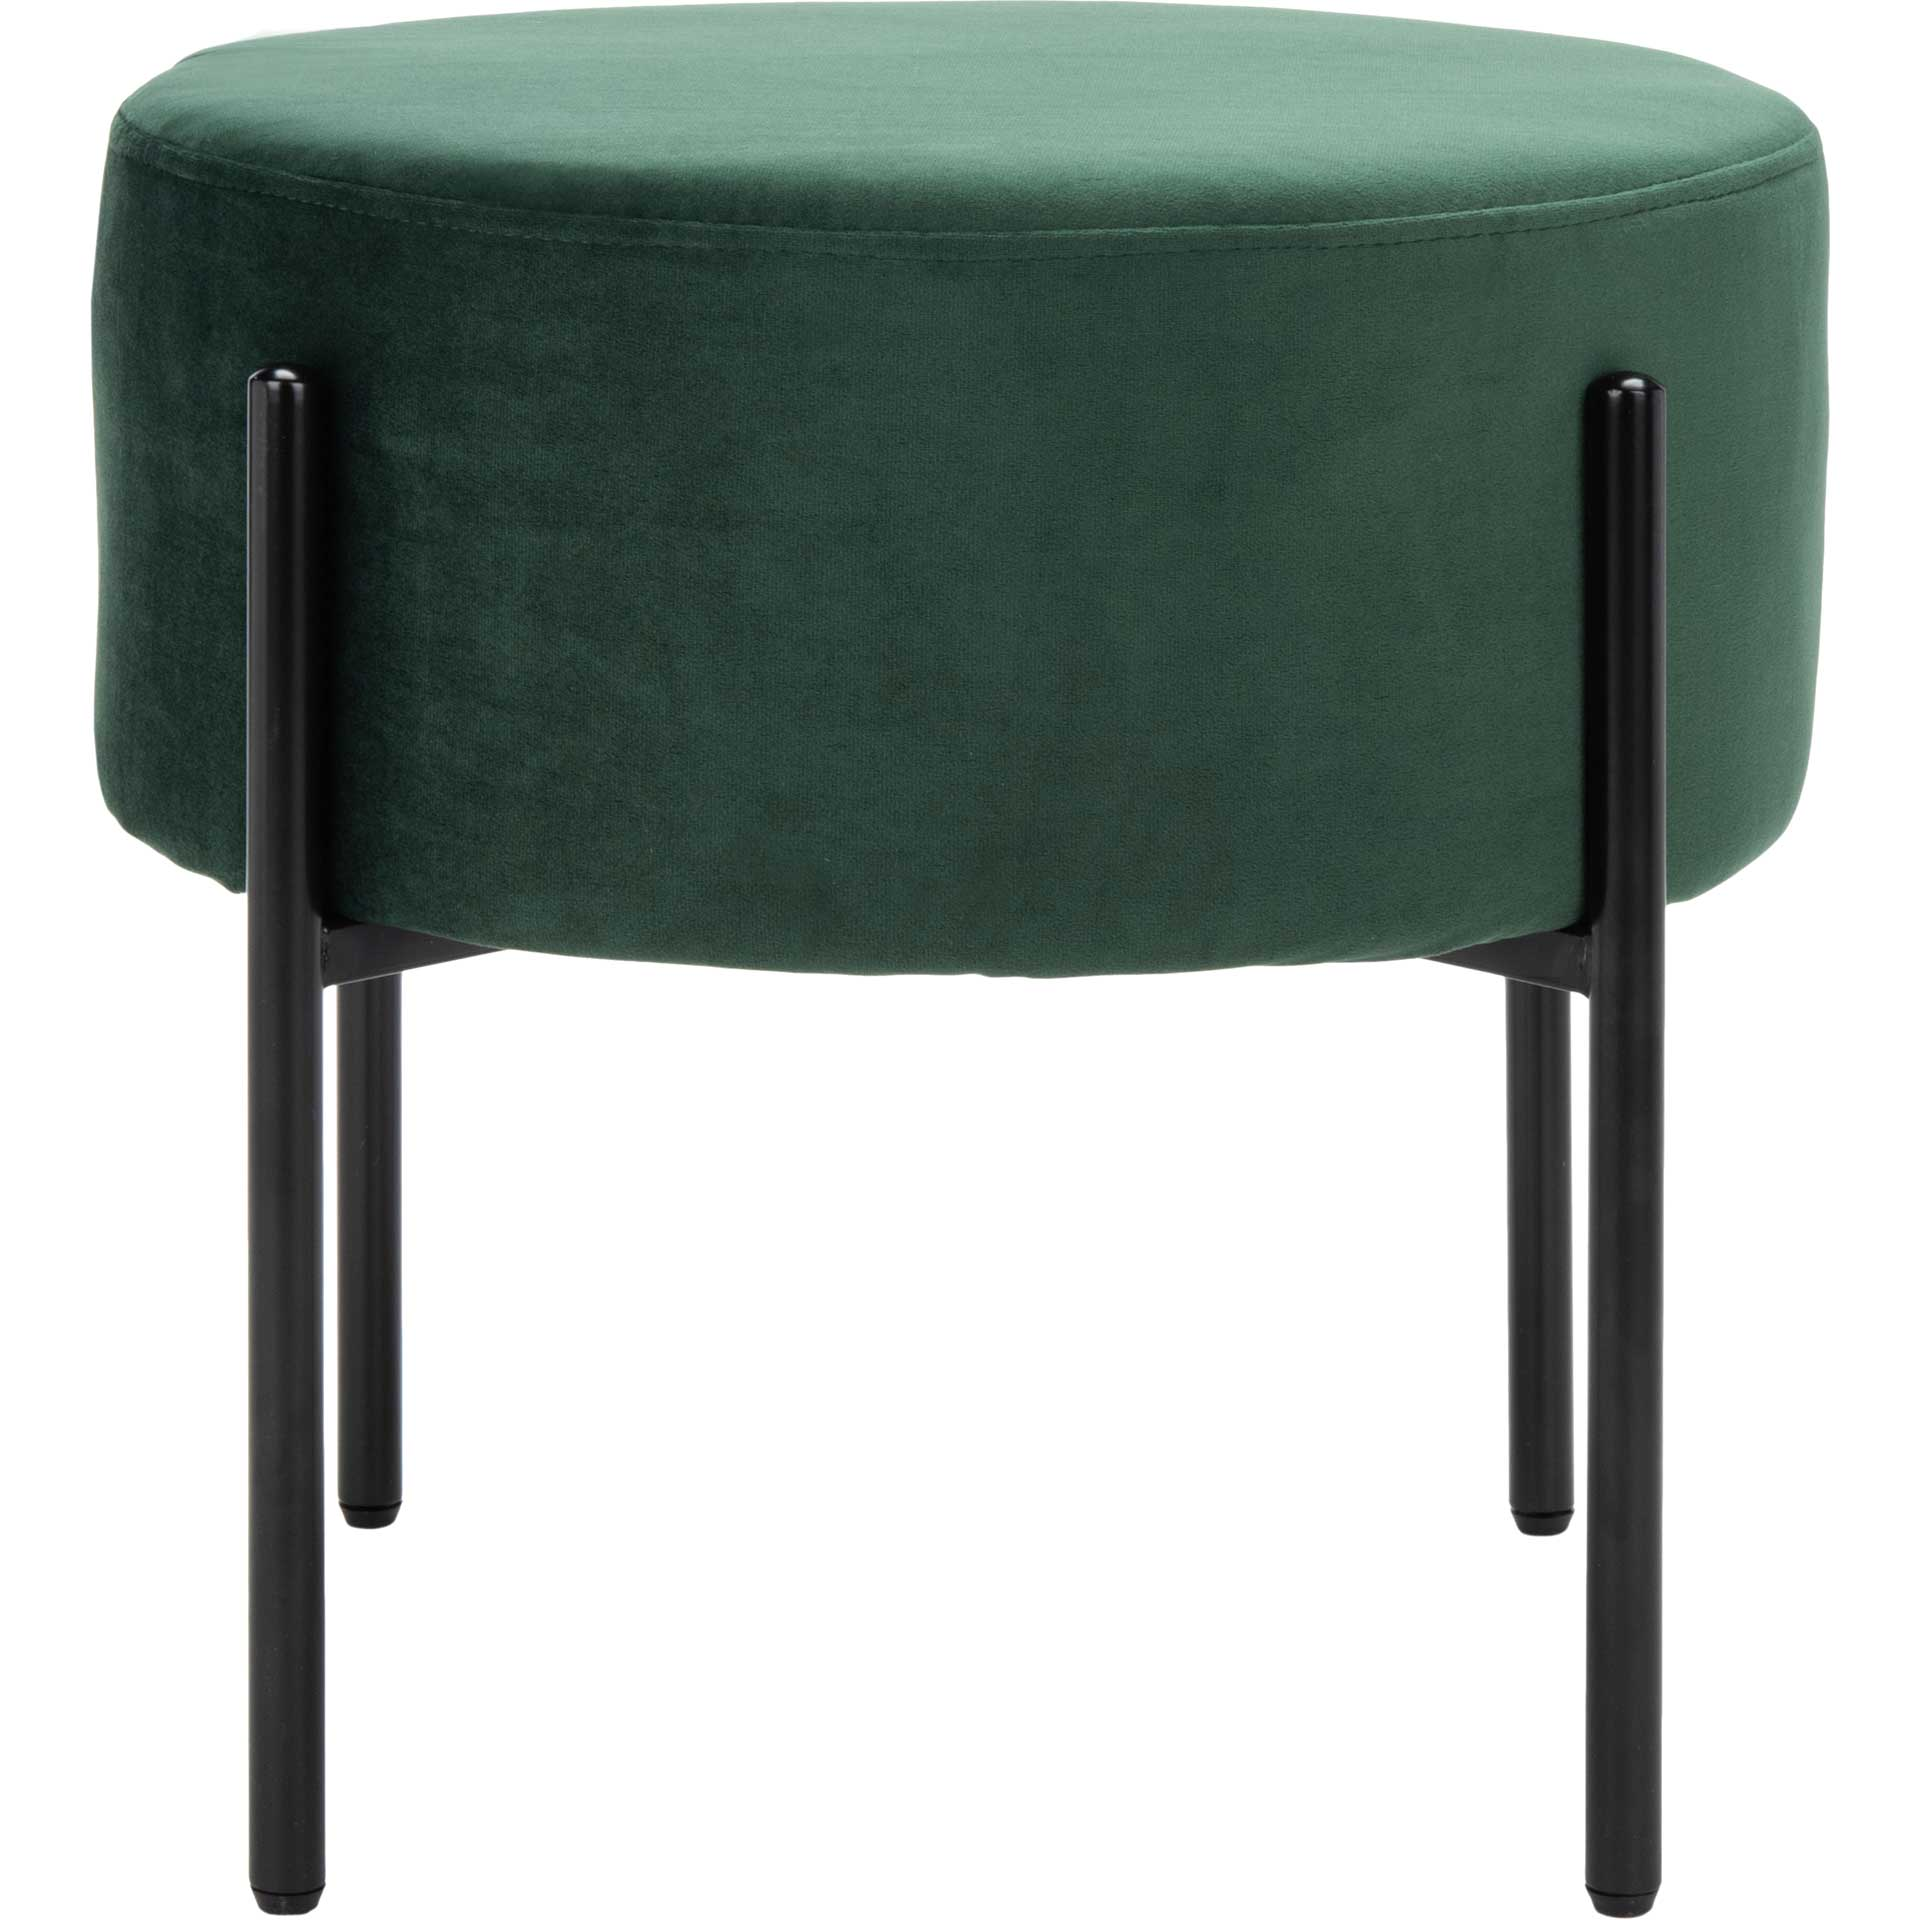 Lincoln Round Ottoman Malachite Green/Black